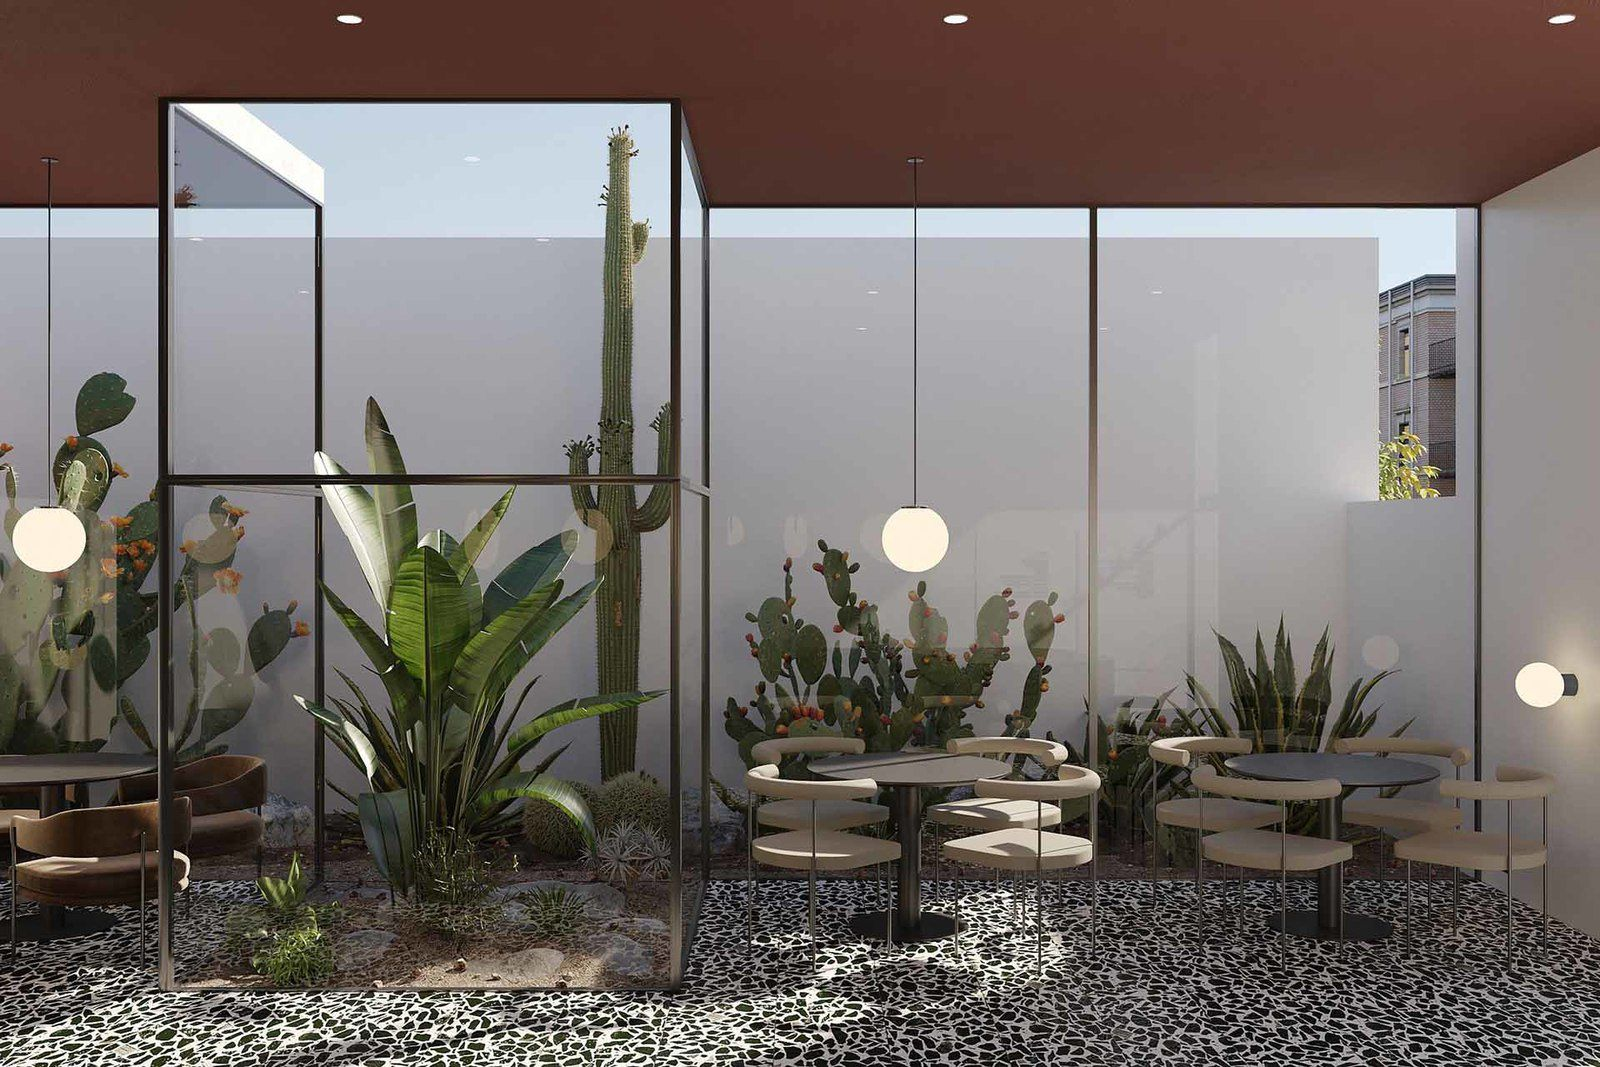 PRICKLY PEAR PROJECT BY ALEXANDER VELGAN, IN SAN FRANCISCO USA